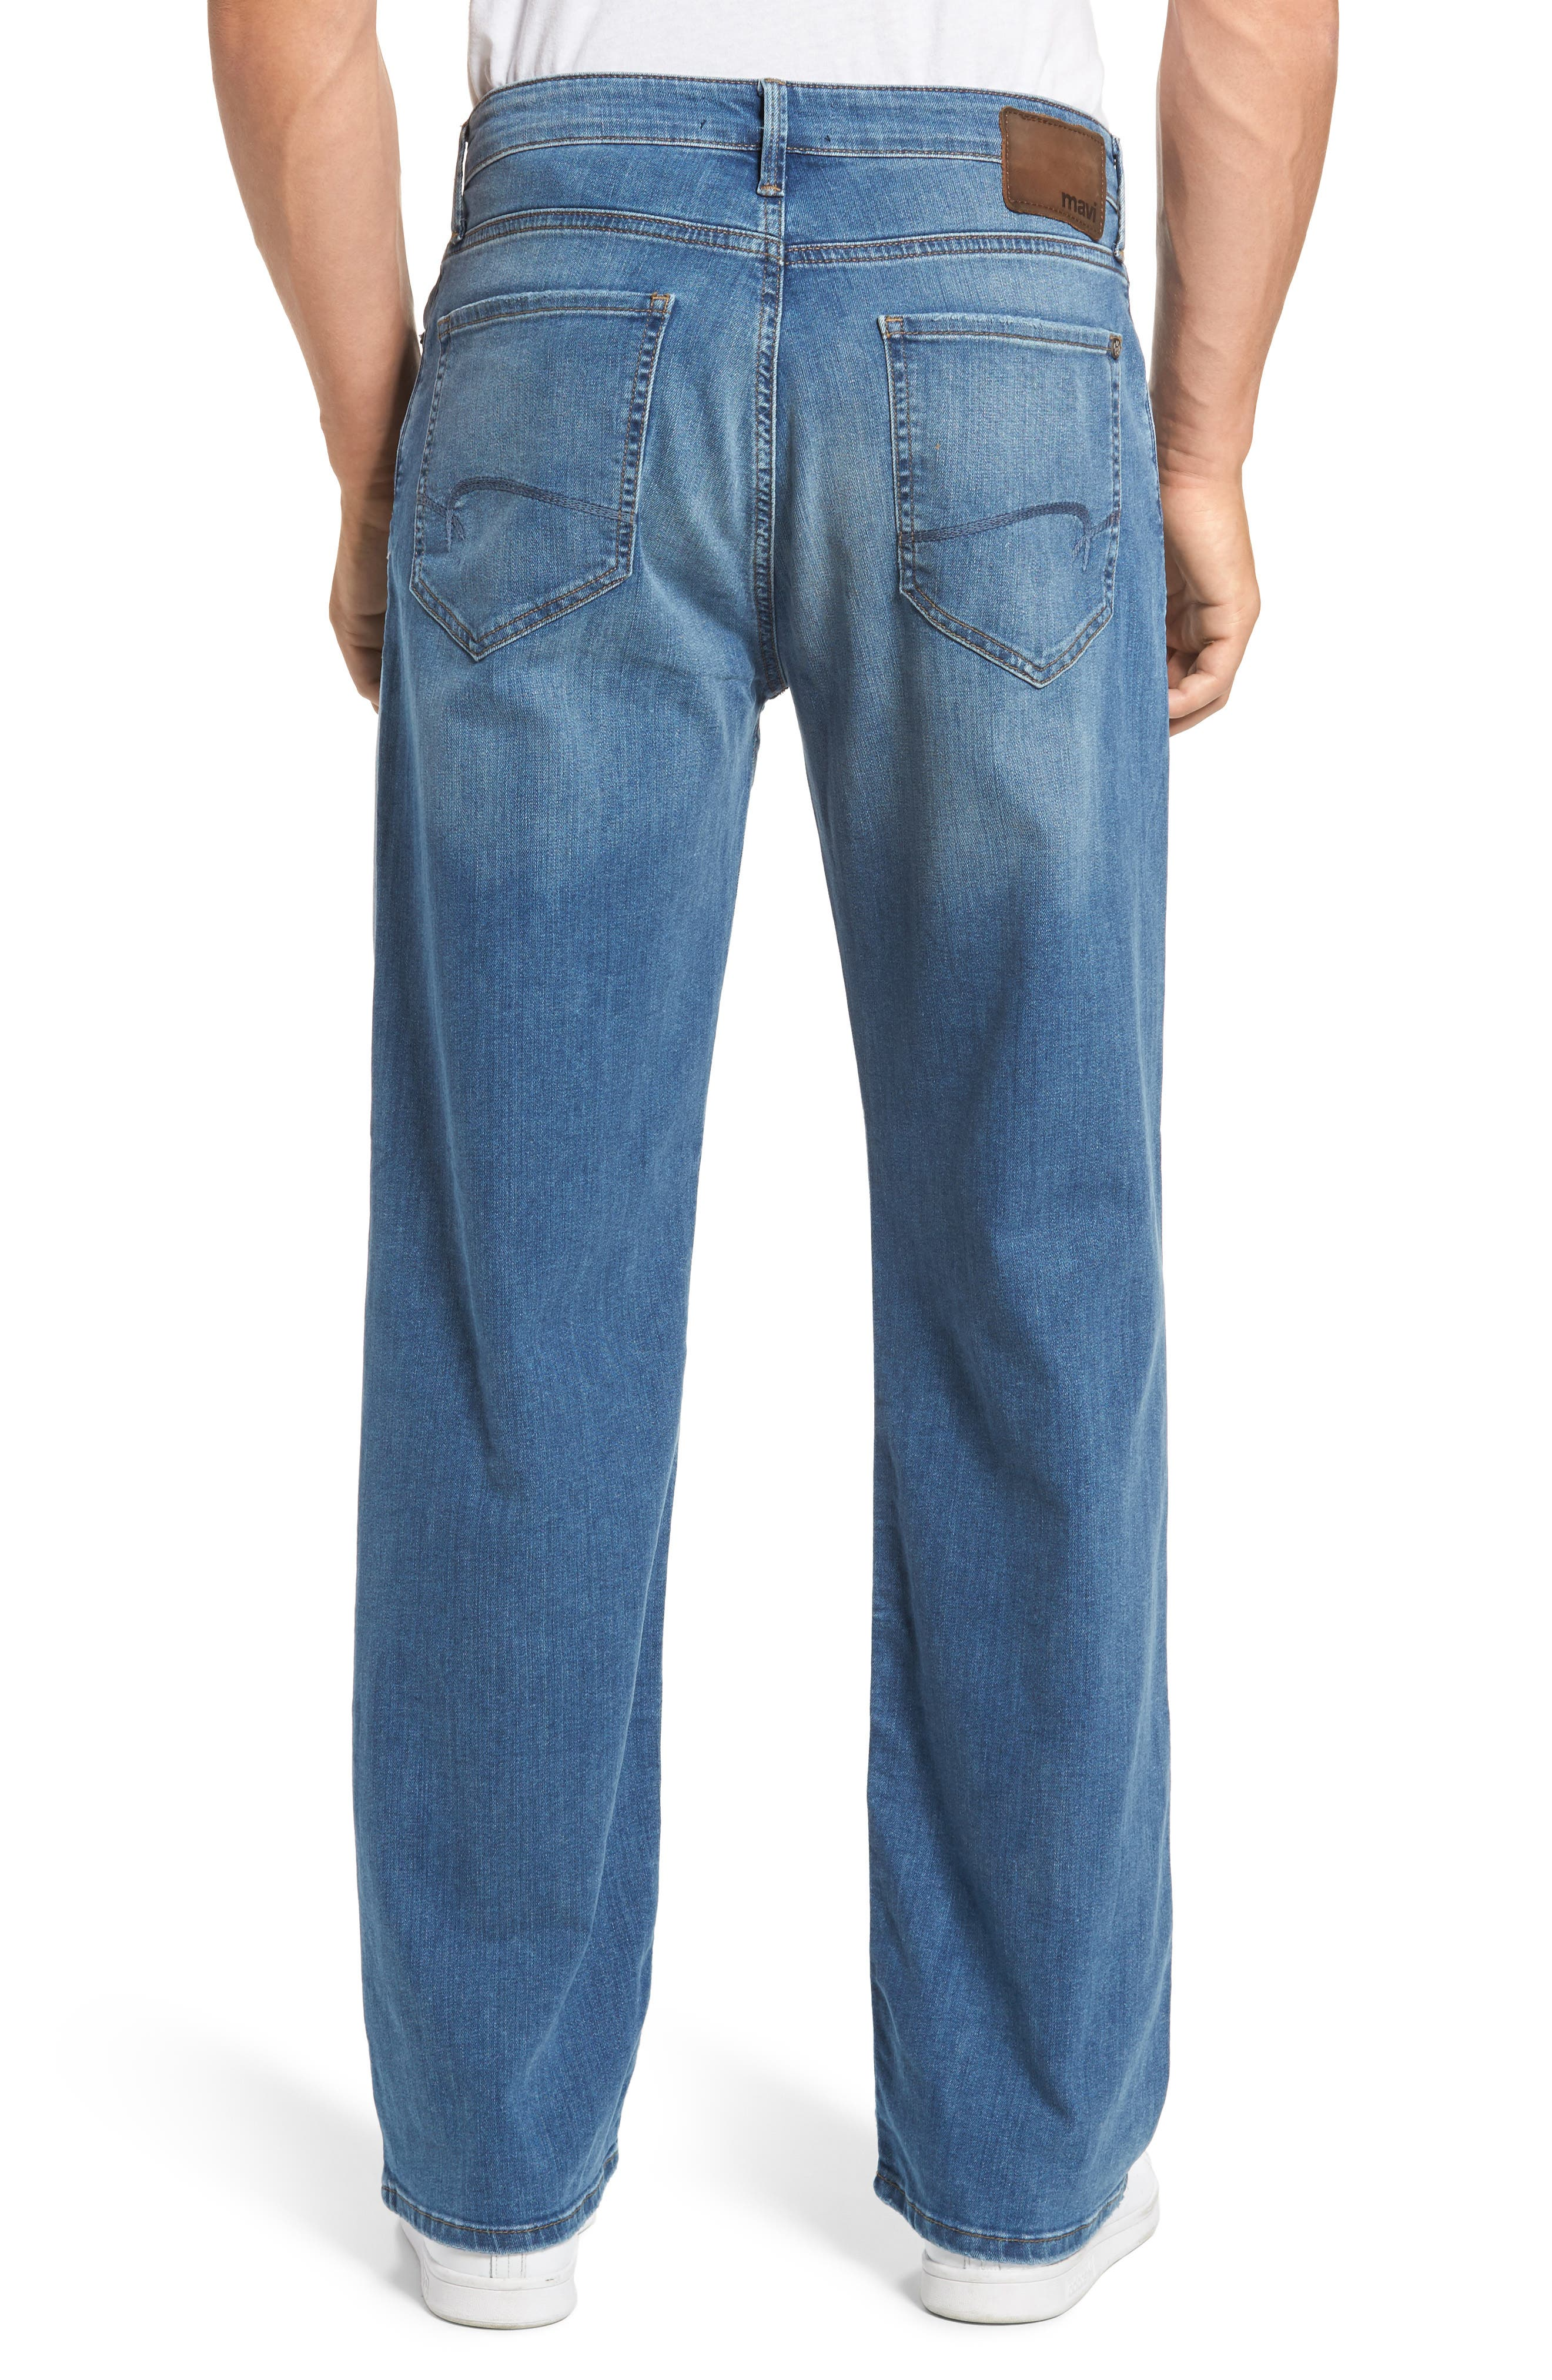 Max Relaxed Fit Jeans,                             Alternate thumbnail 2, color,                             401